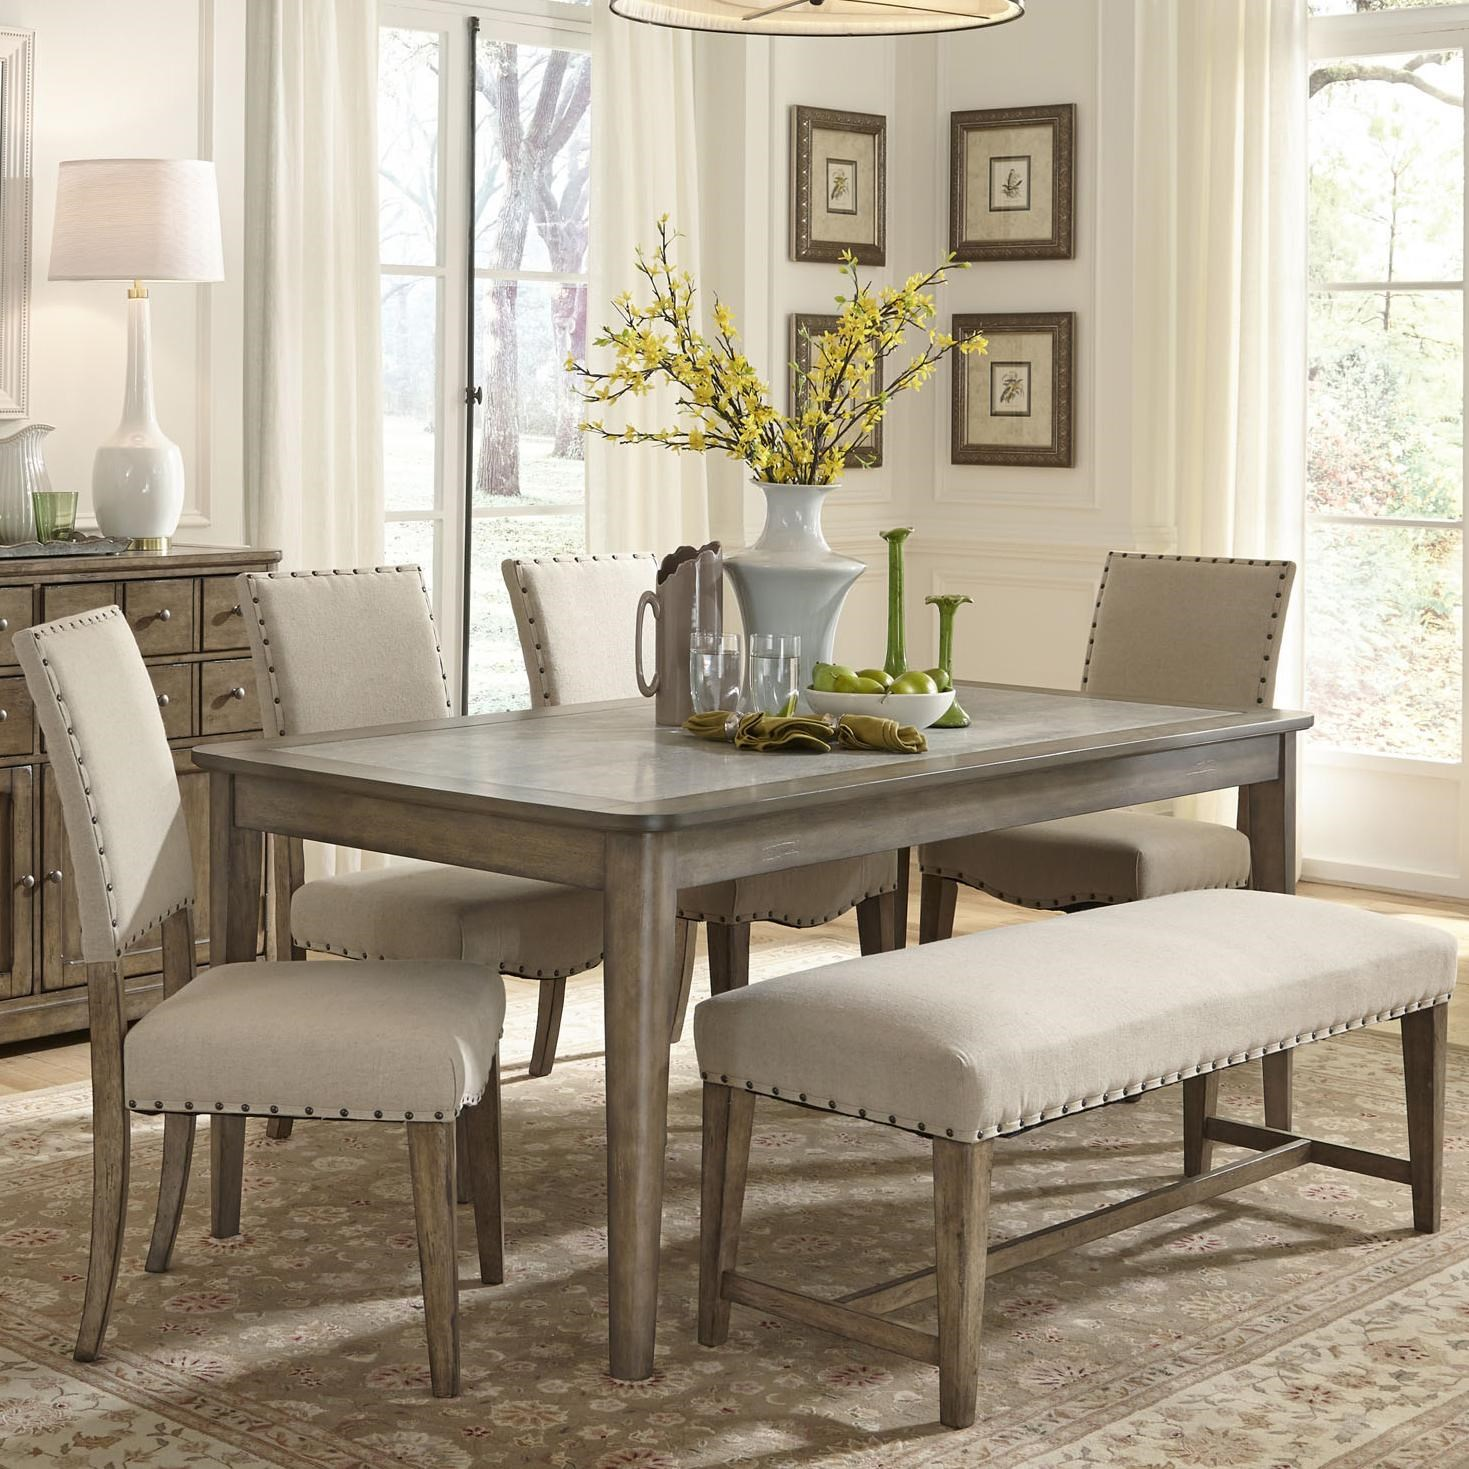 Liberty Furniture Weatherford 6 Piece Dining Table And Chairs Set ...